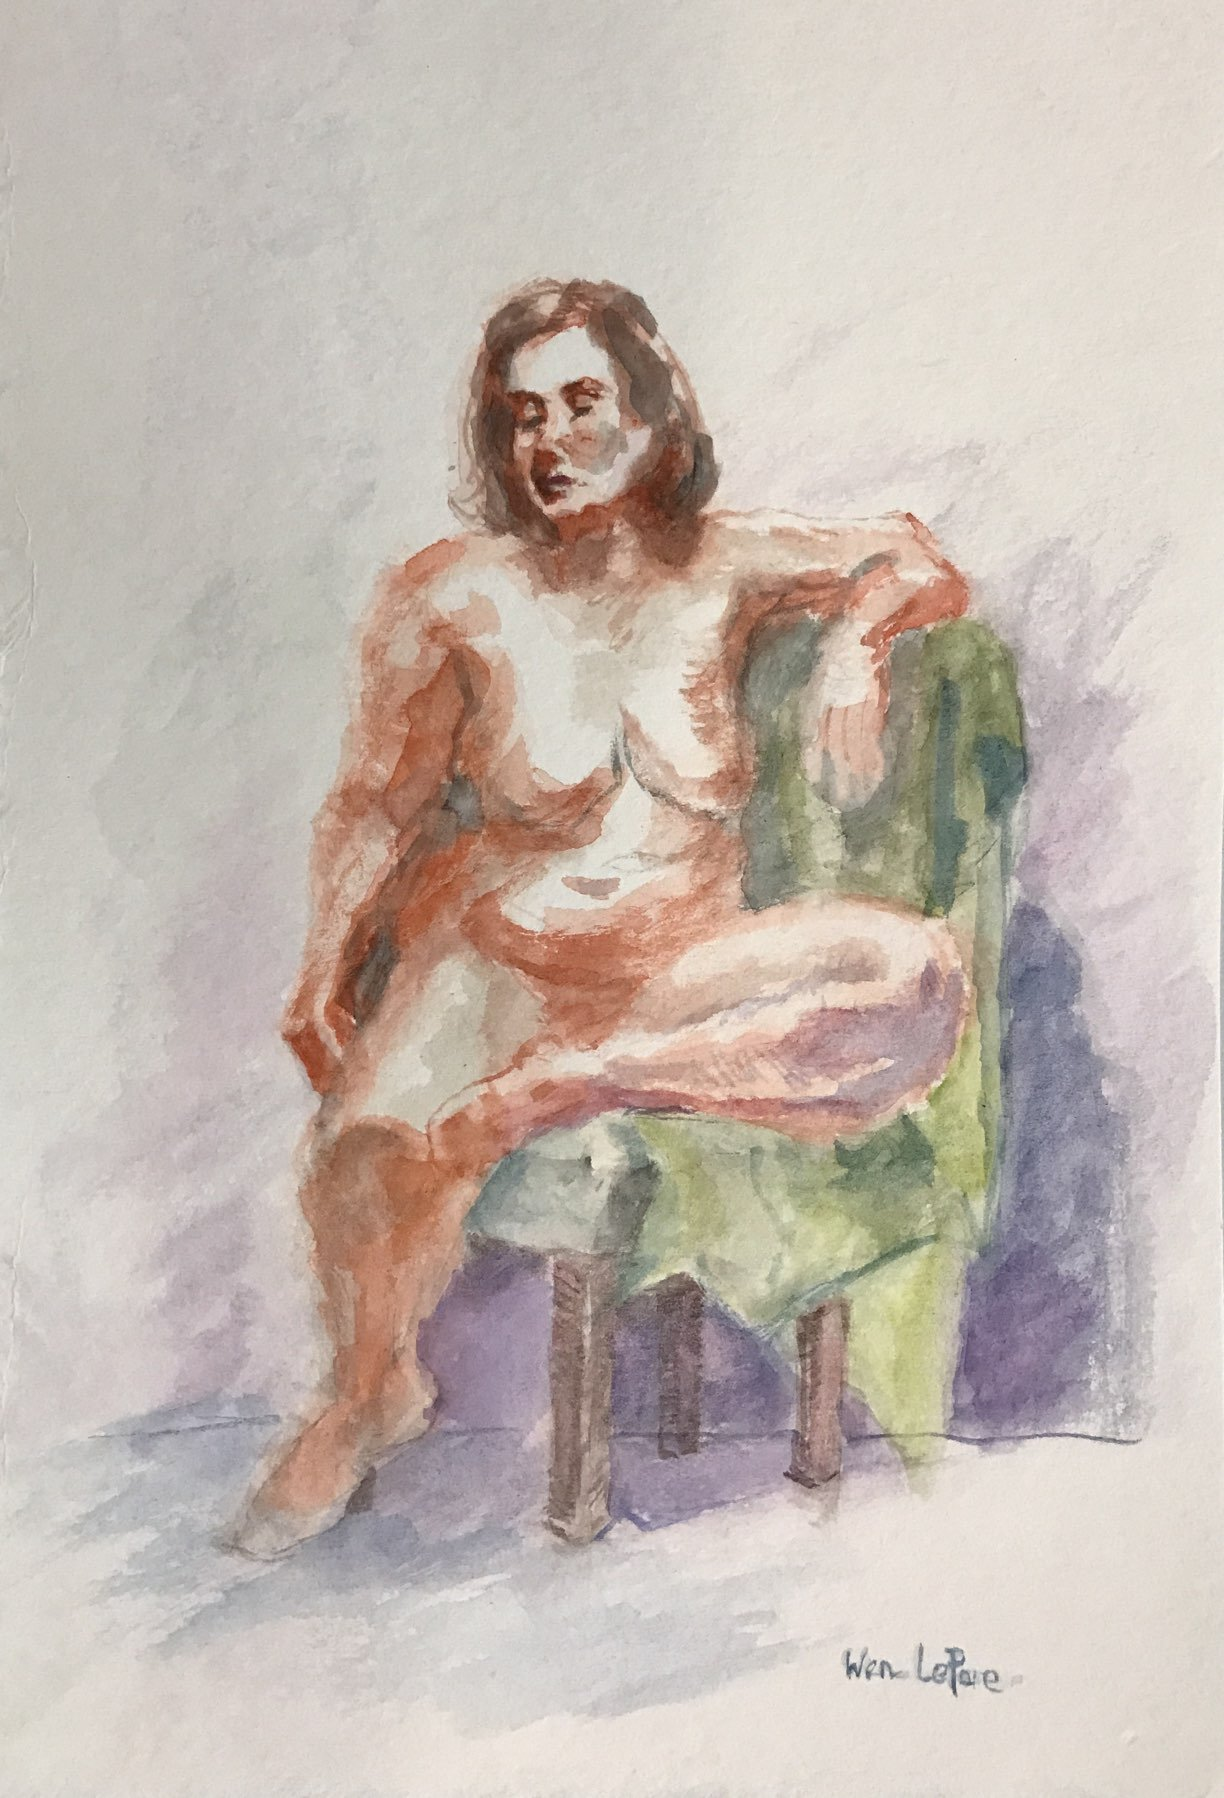 https://0901.nccdn.net/4_2/000/000/01e/20c/watercolor16-copy-1224x1798.jpg